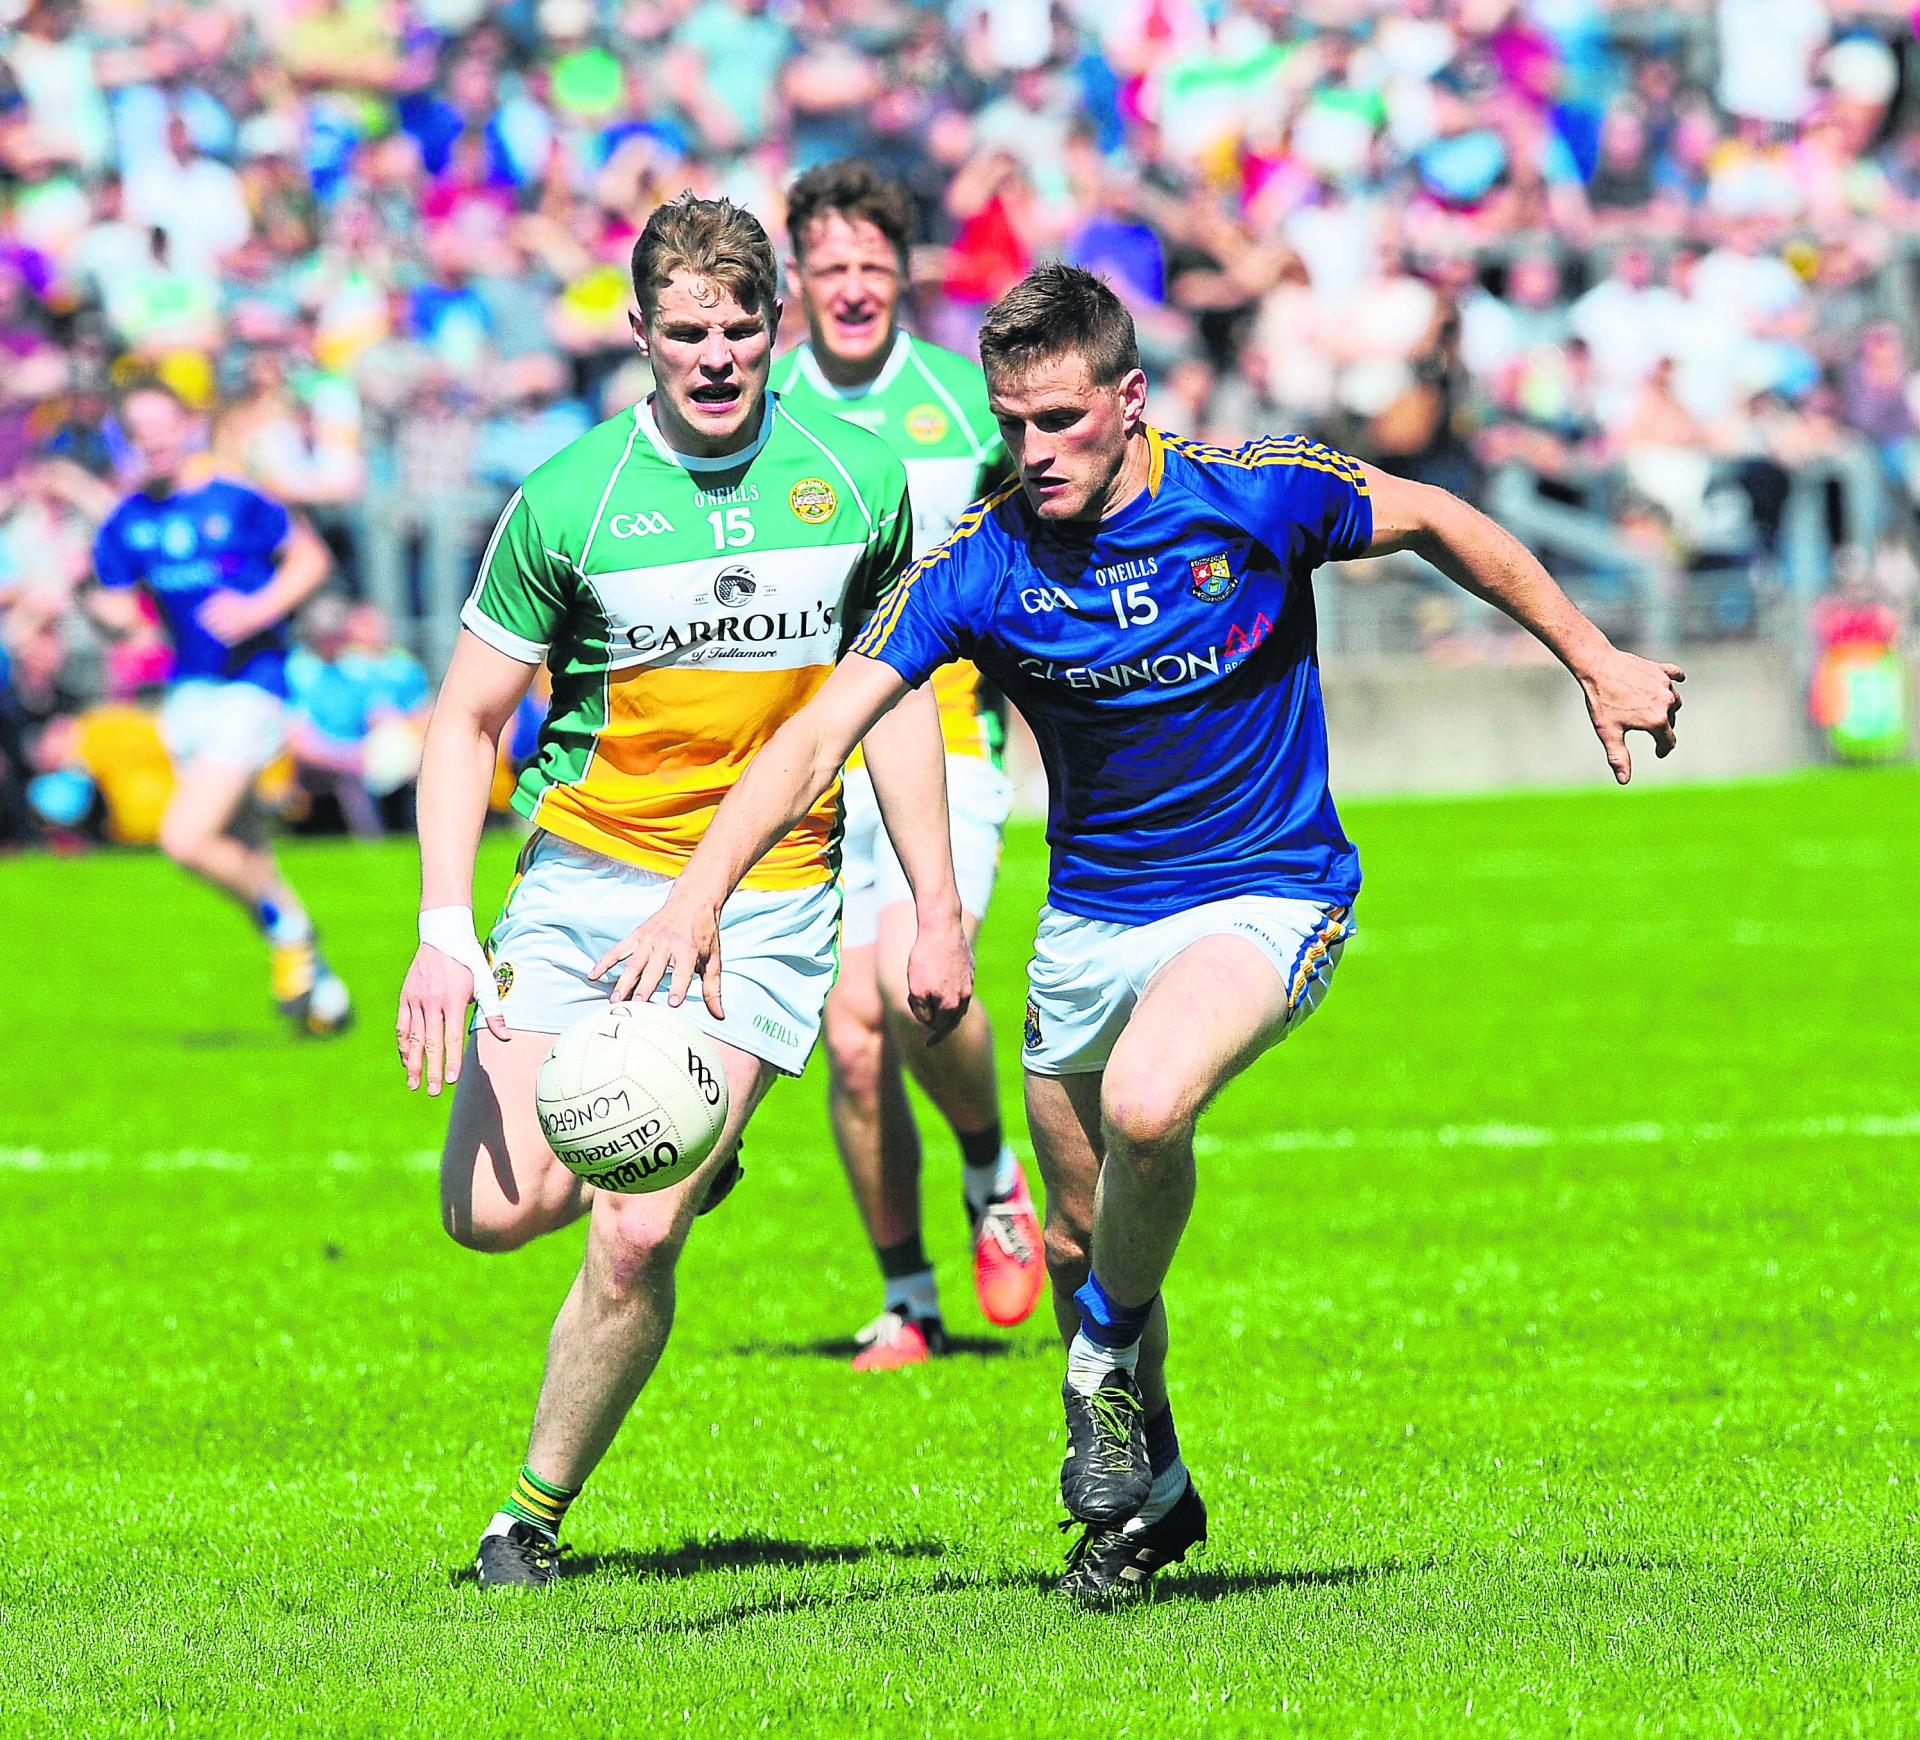 Offaly 2019 Allianz Football League Fixtures Revealed Offaly Express